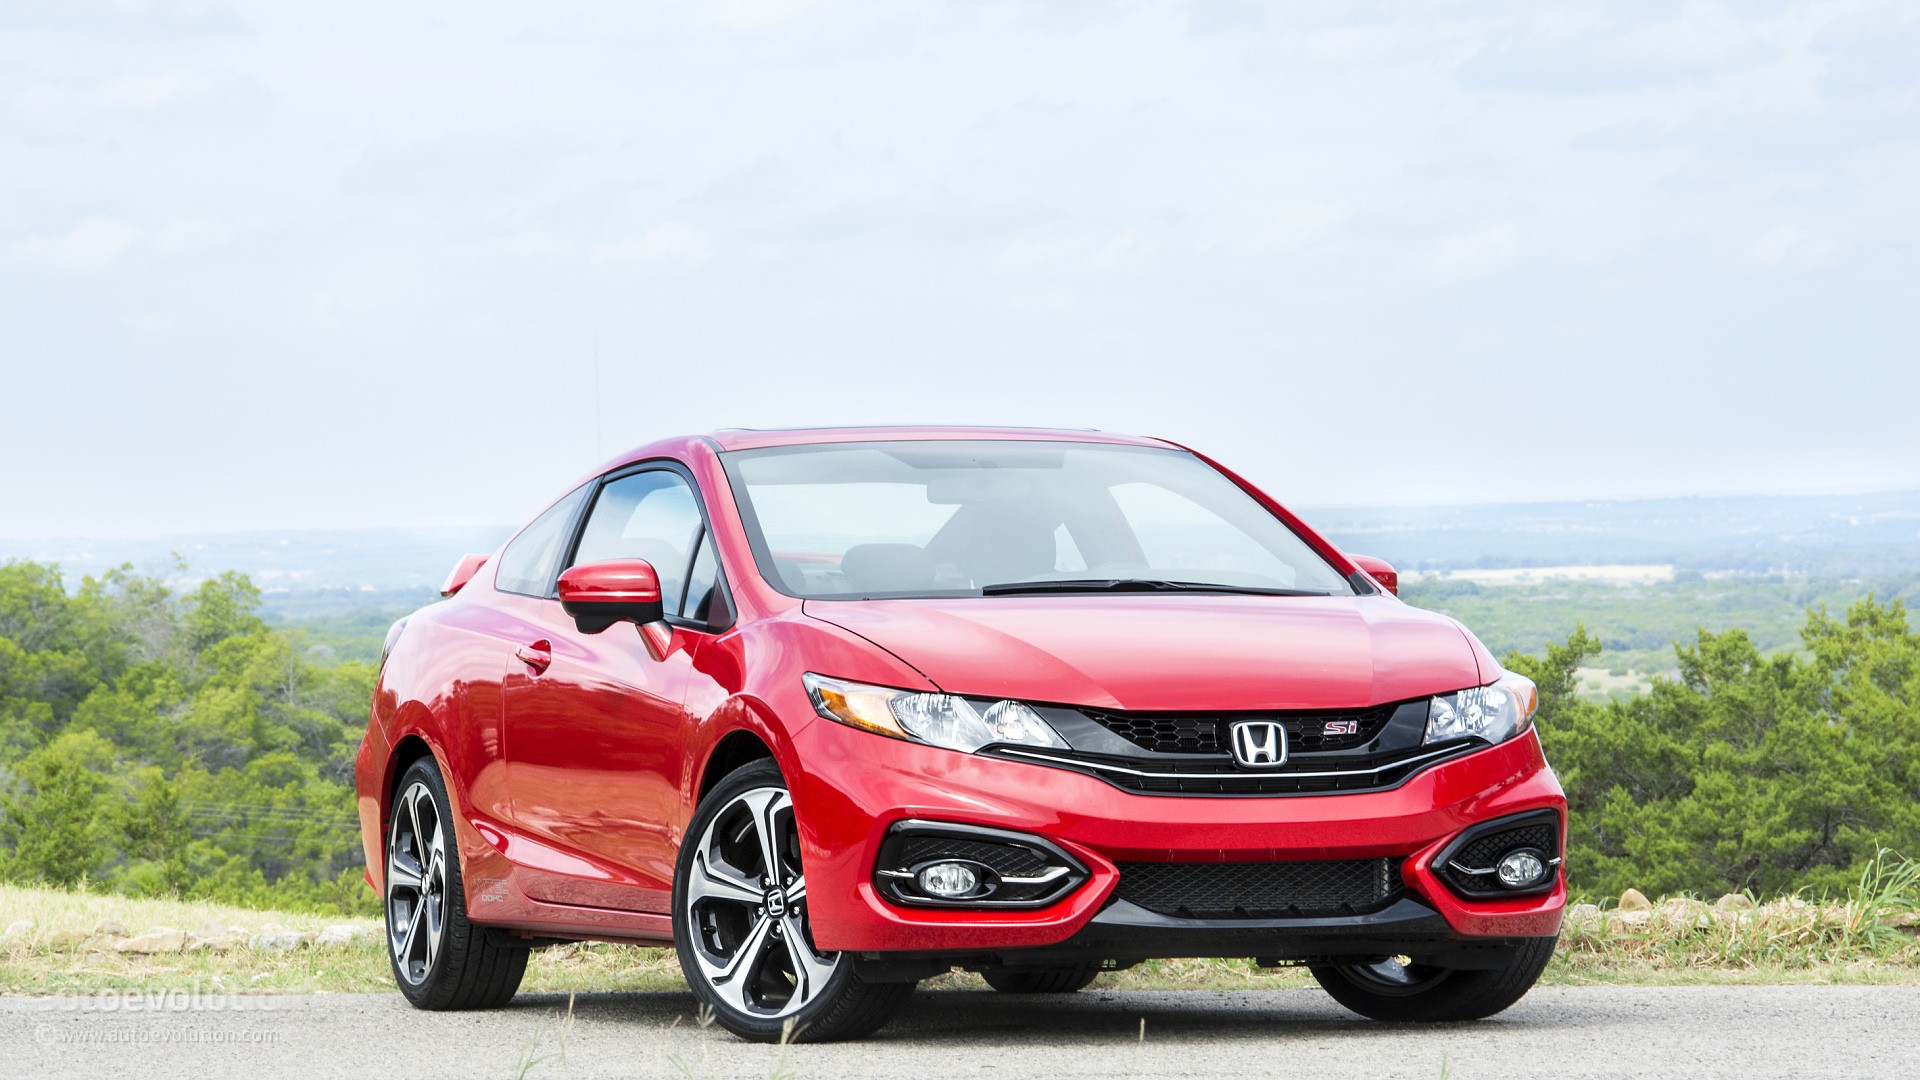 2015 honda civic si coupe review autoevolution. Black Bedroom Furniture Sets. Home Design Ideas